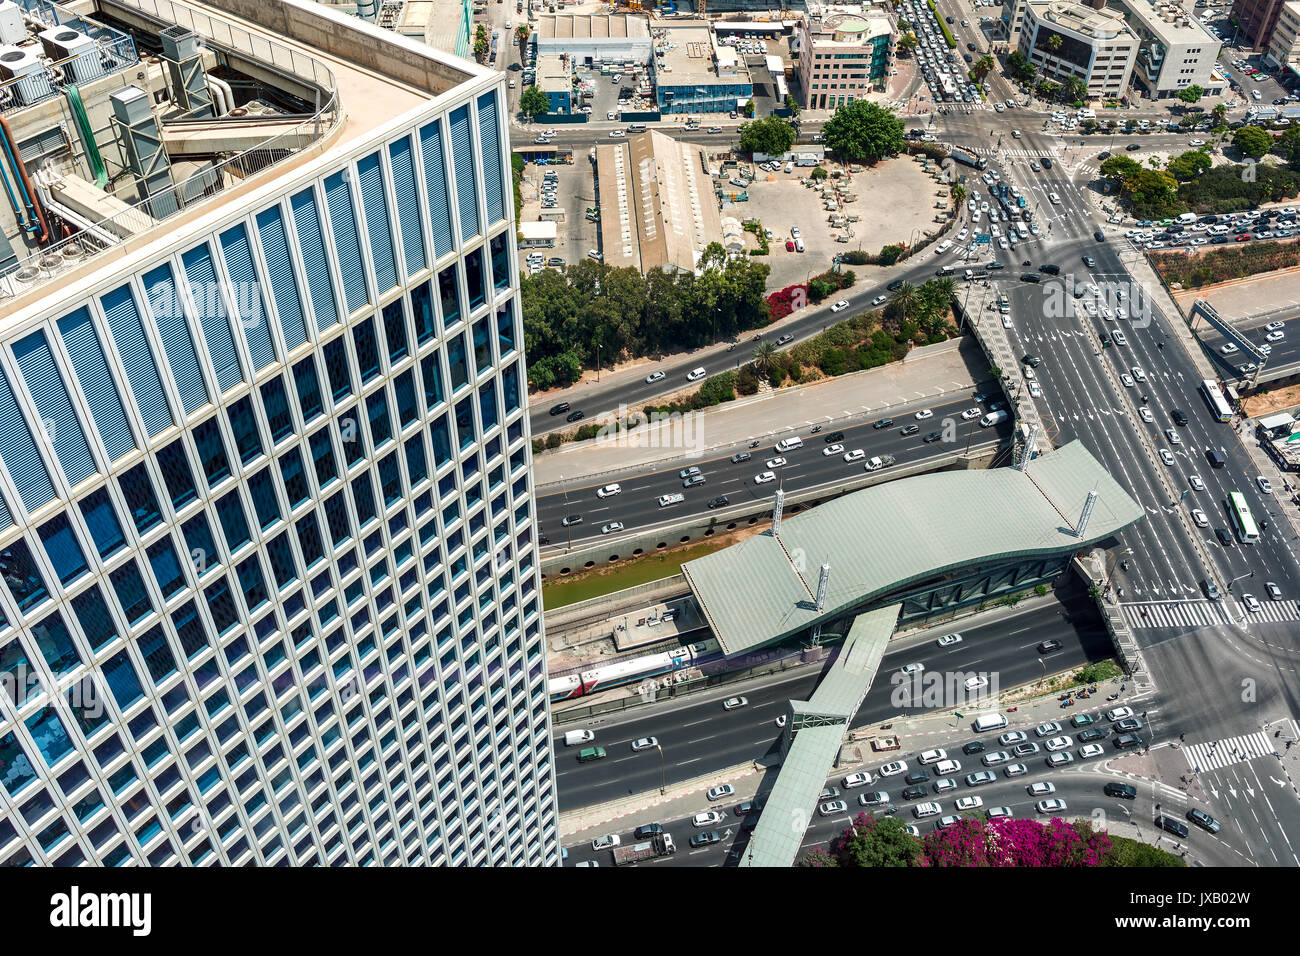 View of urban roads, freeways and modern building in Tel Aviv, Israel. - Stock Image